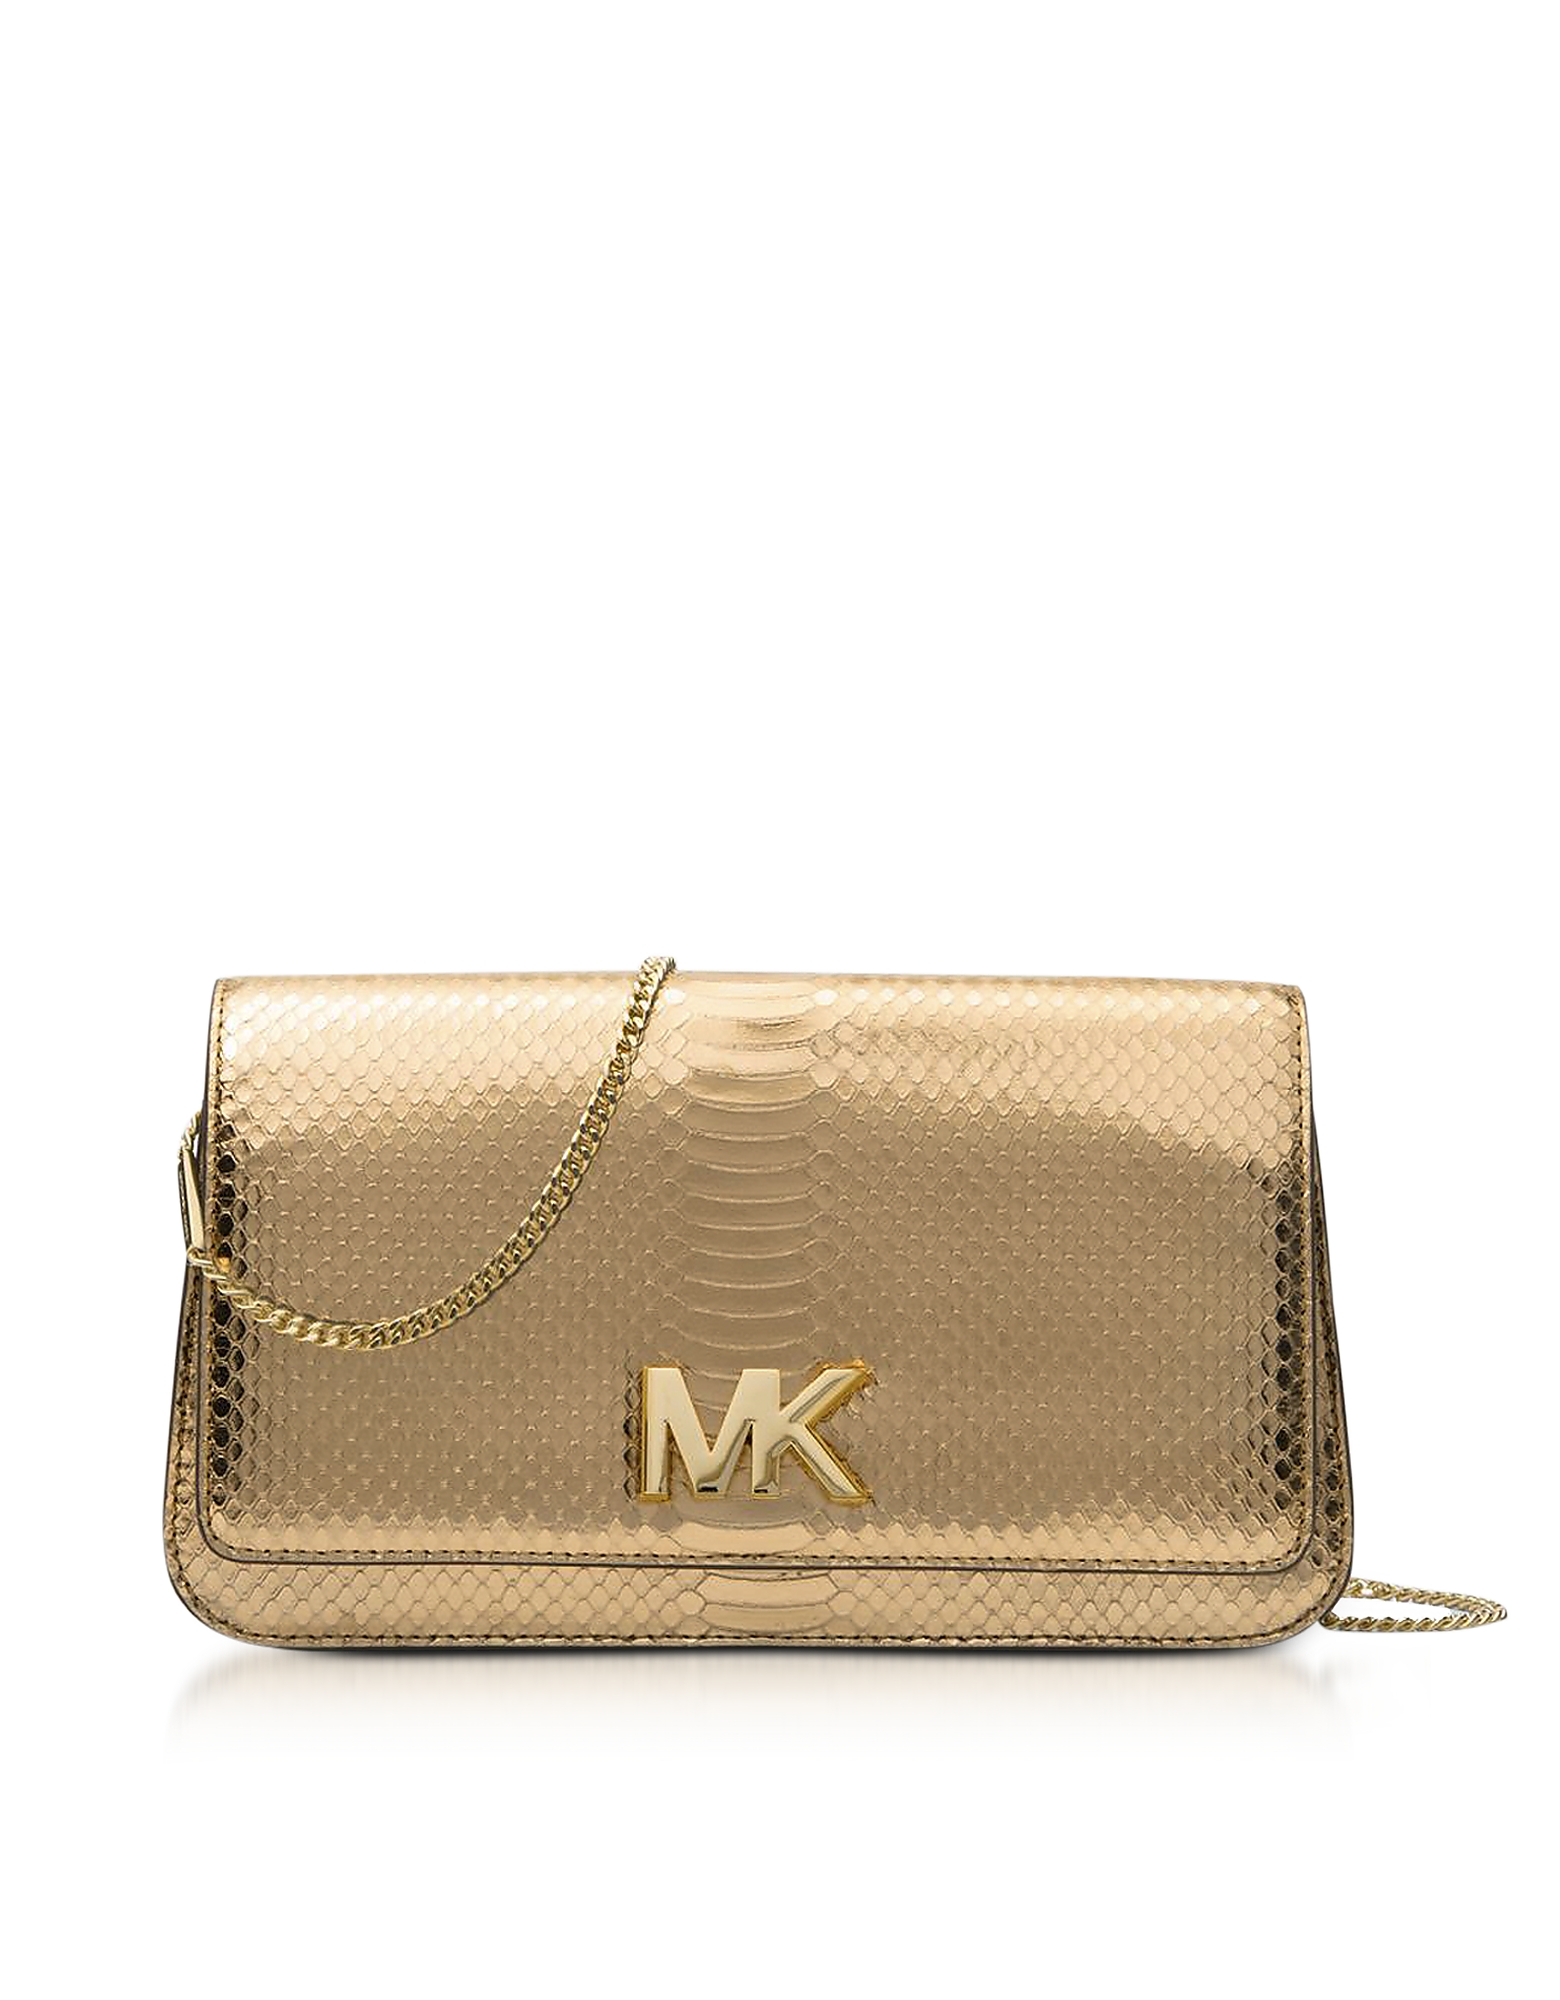 Michael Kors Handbags, Mott Large Pale Gold Metallic Ayers Embossed Leather Clutch